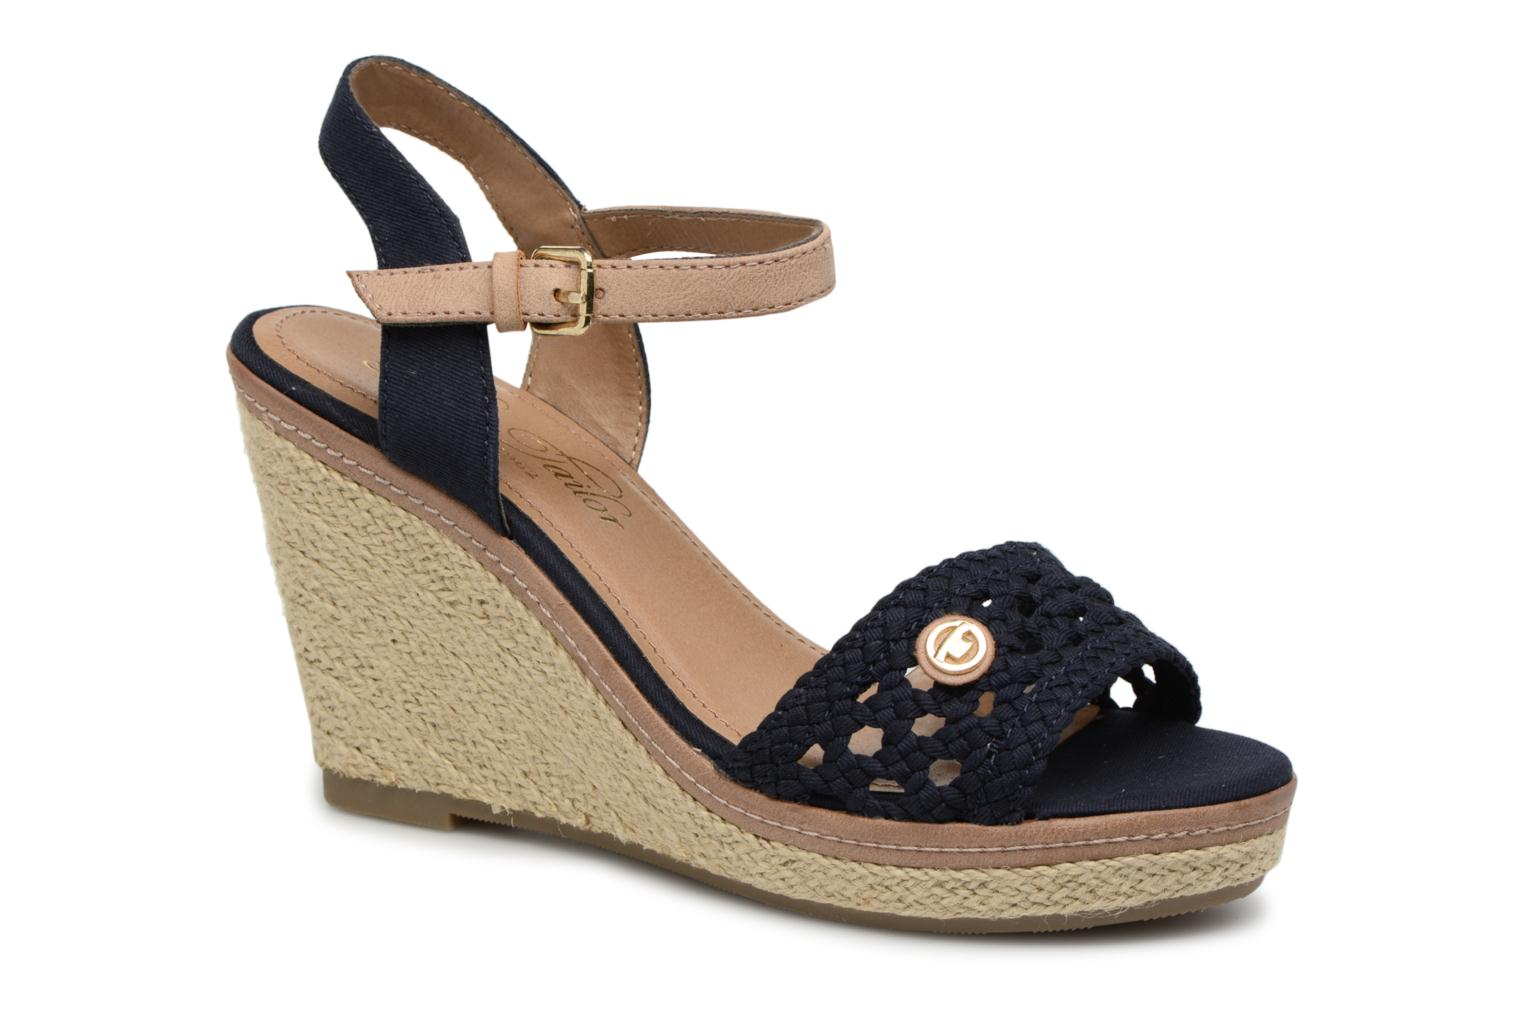 Marques Chaussure femme Tom Tailor femme Aly Navy